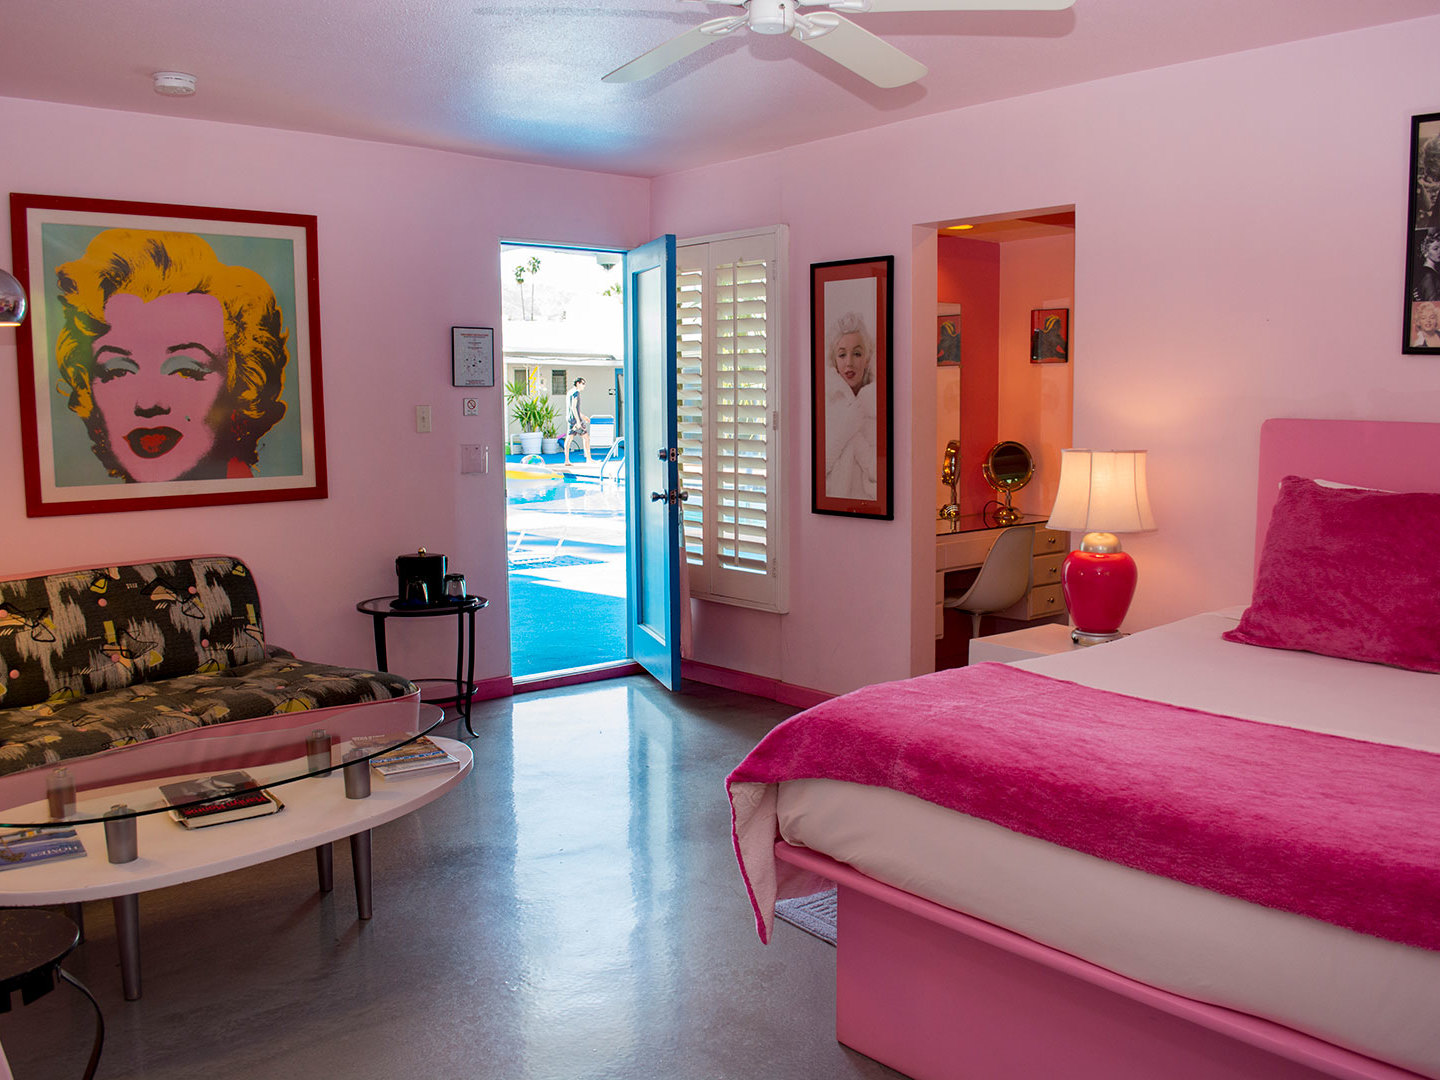 A bedroom with a large red chair in a room at Palm Springs Rendezvous.